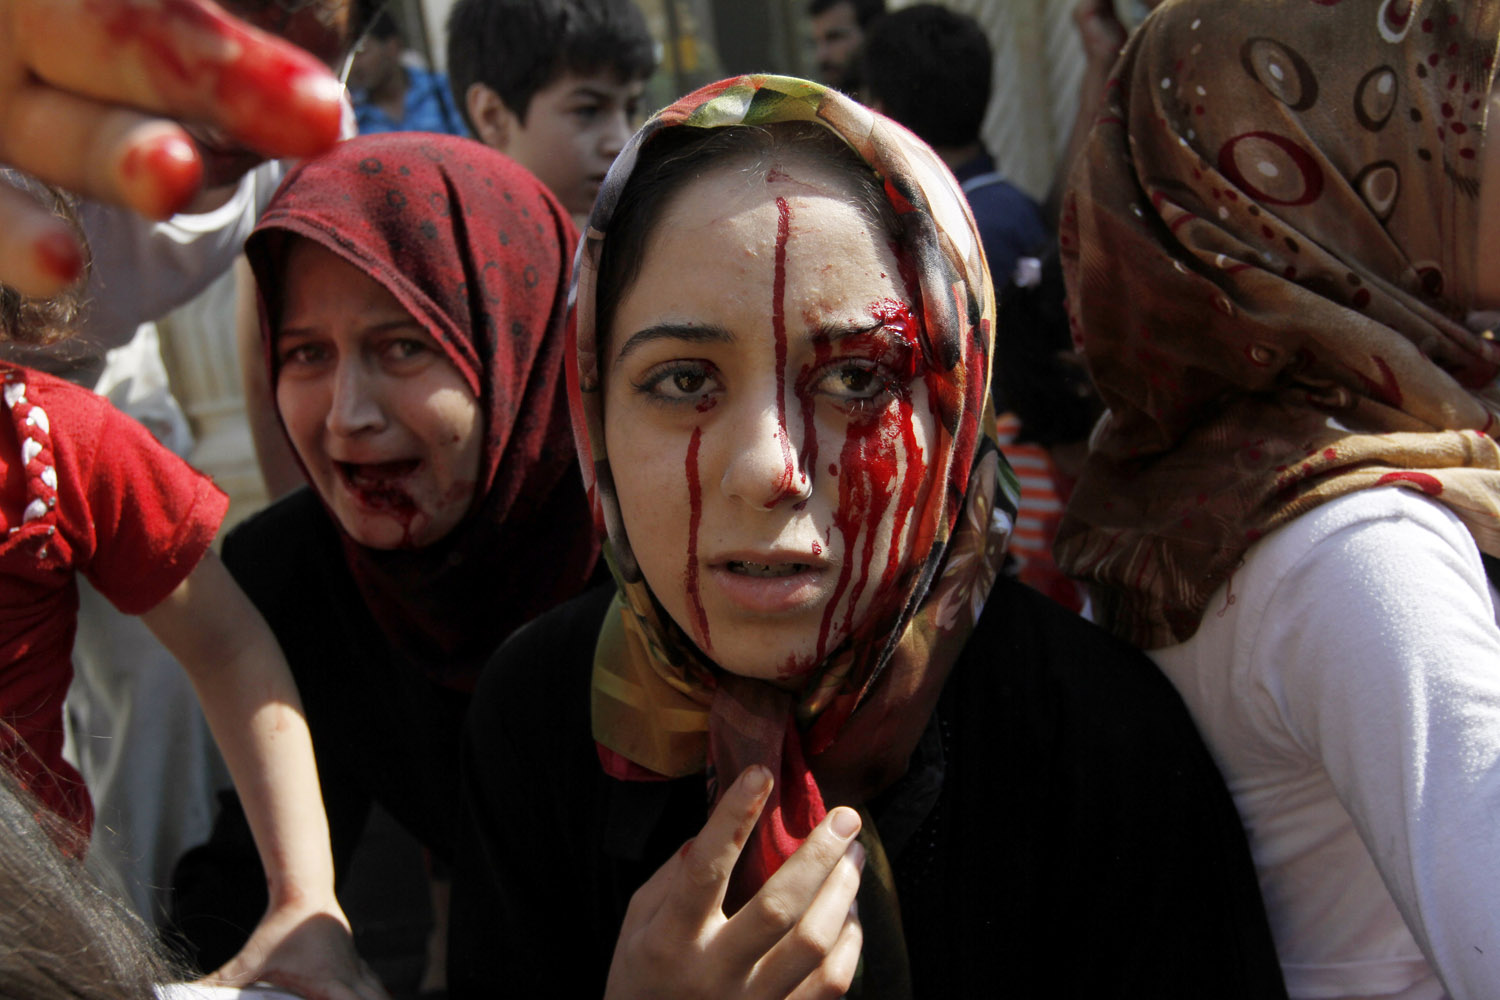 Aug. 15, 2012. Injured Syrian women arrive at a field hospital after an air strike hit their homes in the town of Azaz on the outskirts of Aleppo, Syria.